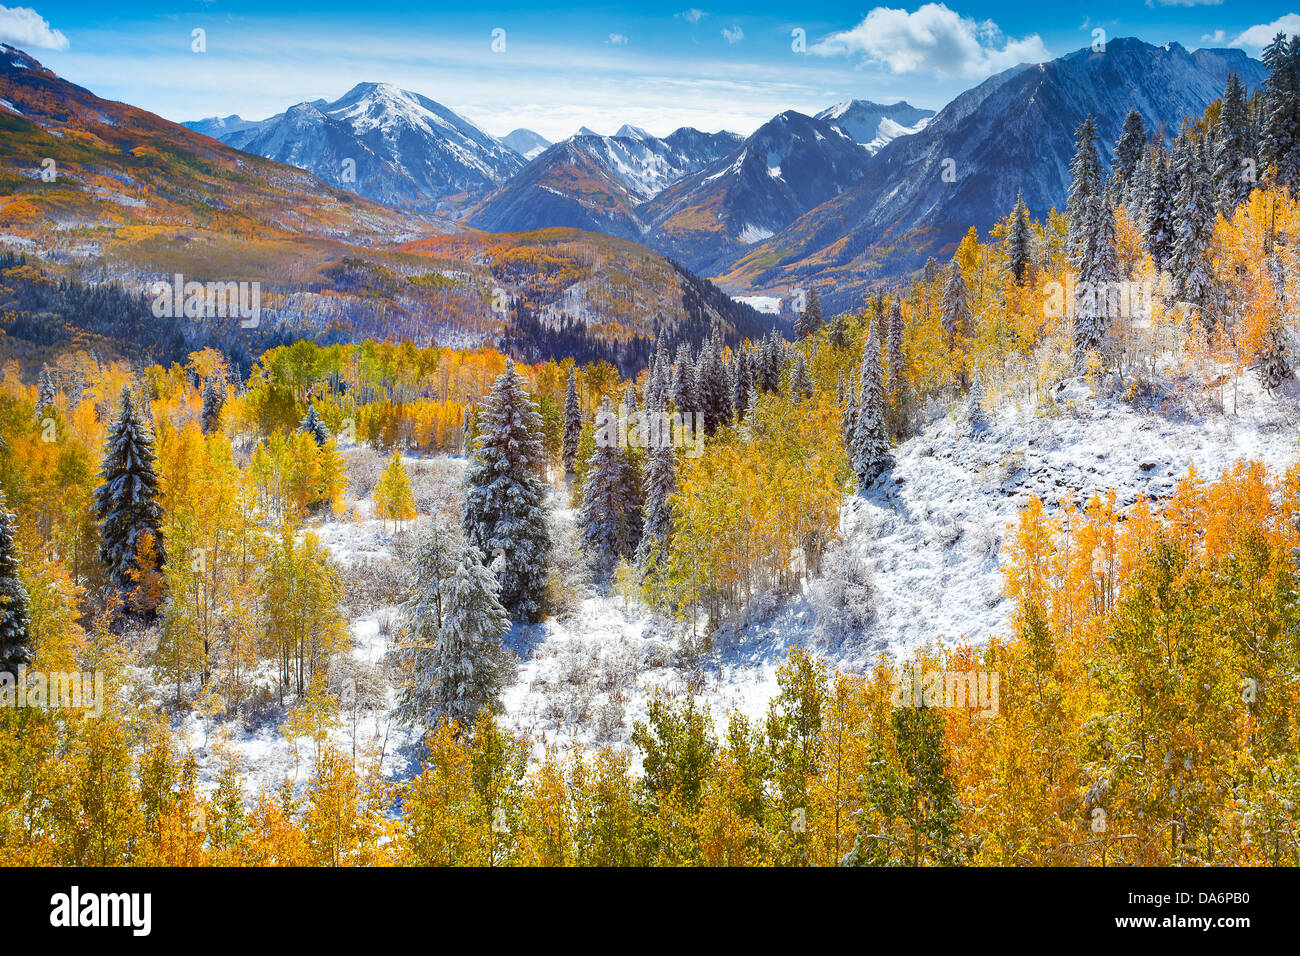 USA United States America Colorado Fall Autumn Trees Fall - Mountains in the united states